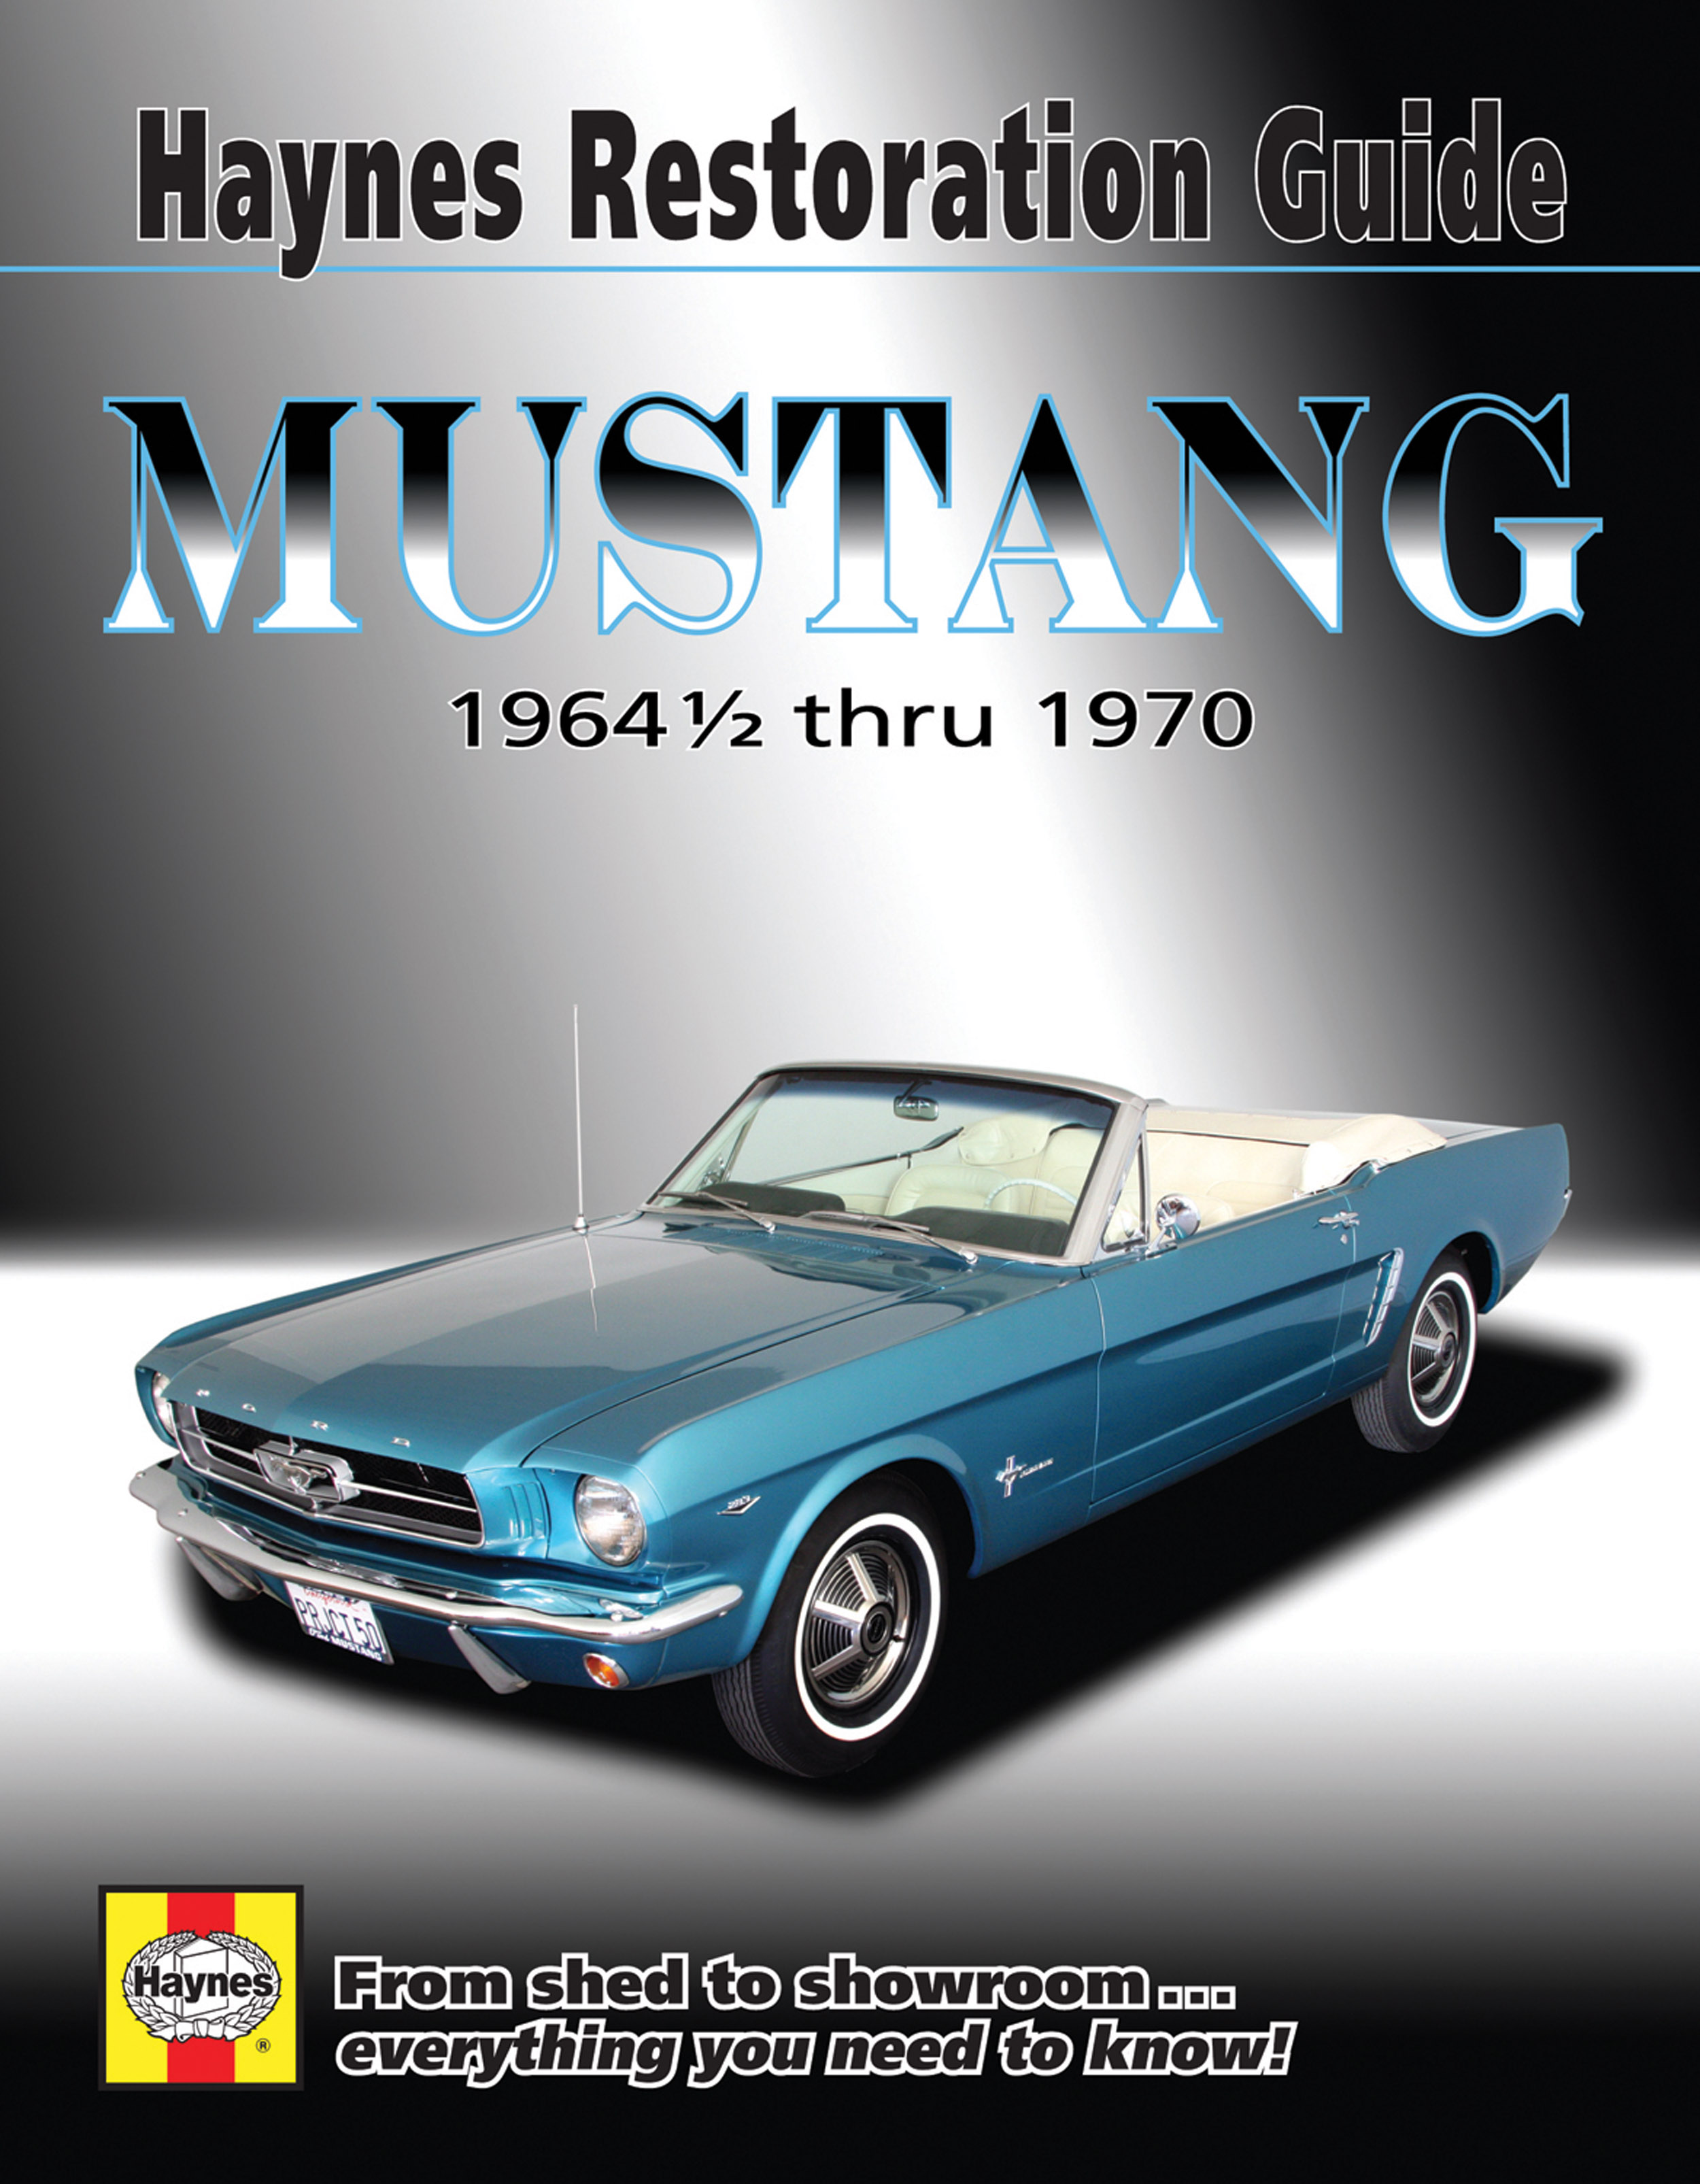 1965 ford mustang repair manual free owners manual u2022 rh wordworksbysea com Ford Mustang Repair Manual Ford Mustang Manual Transmission